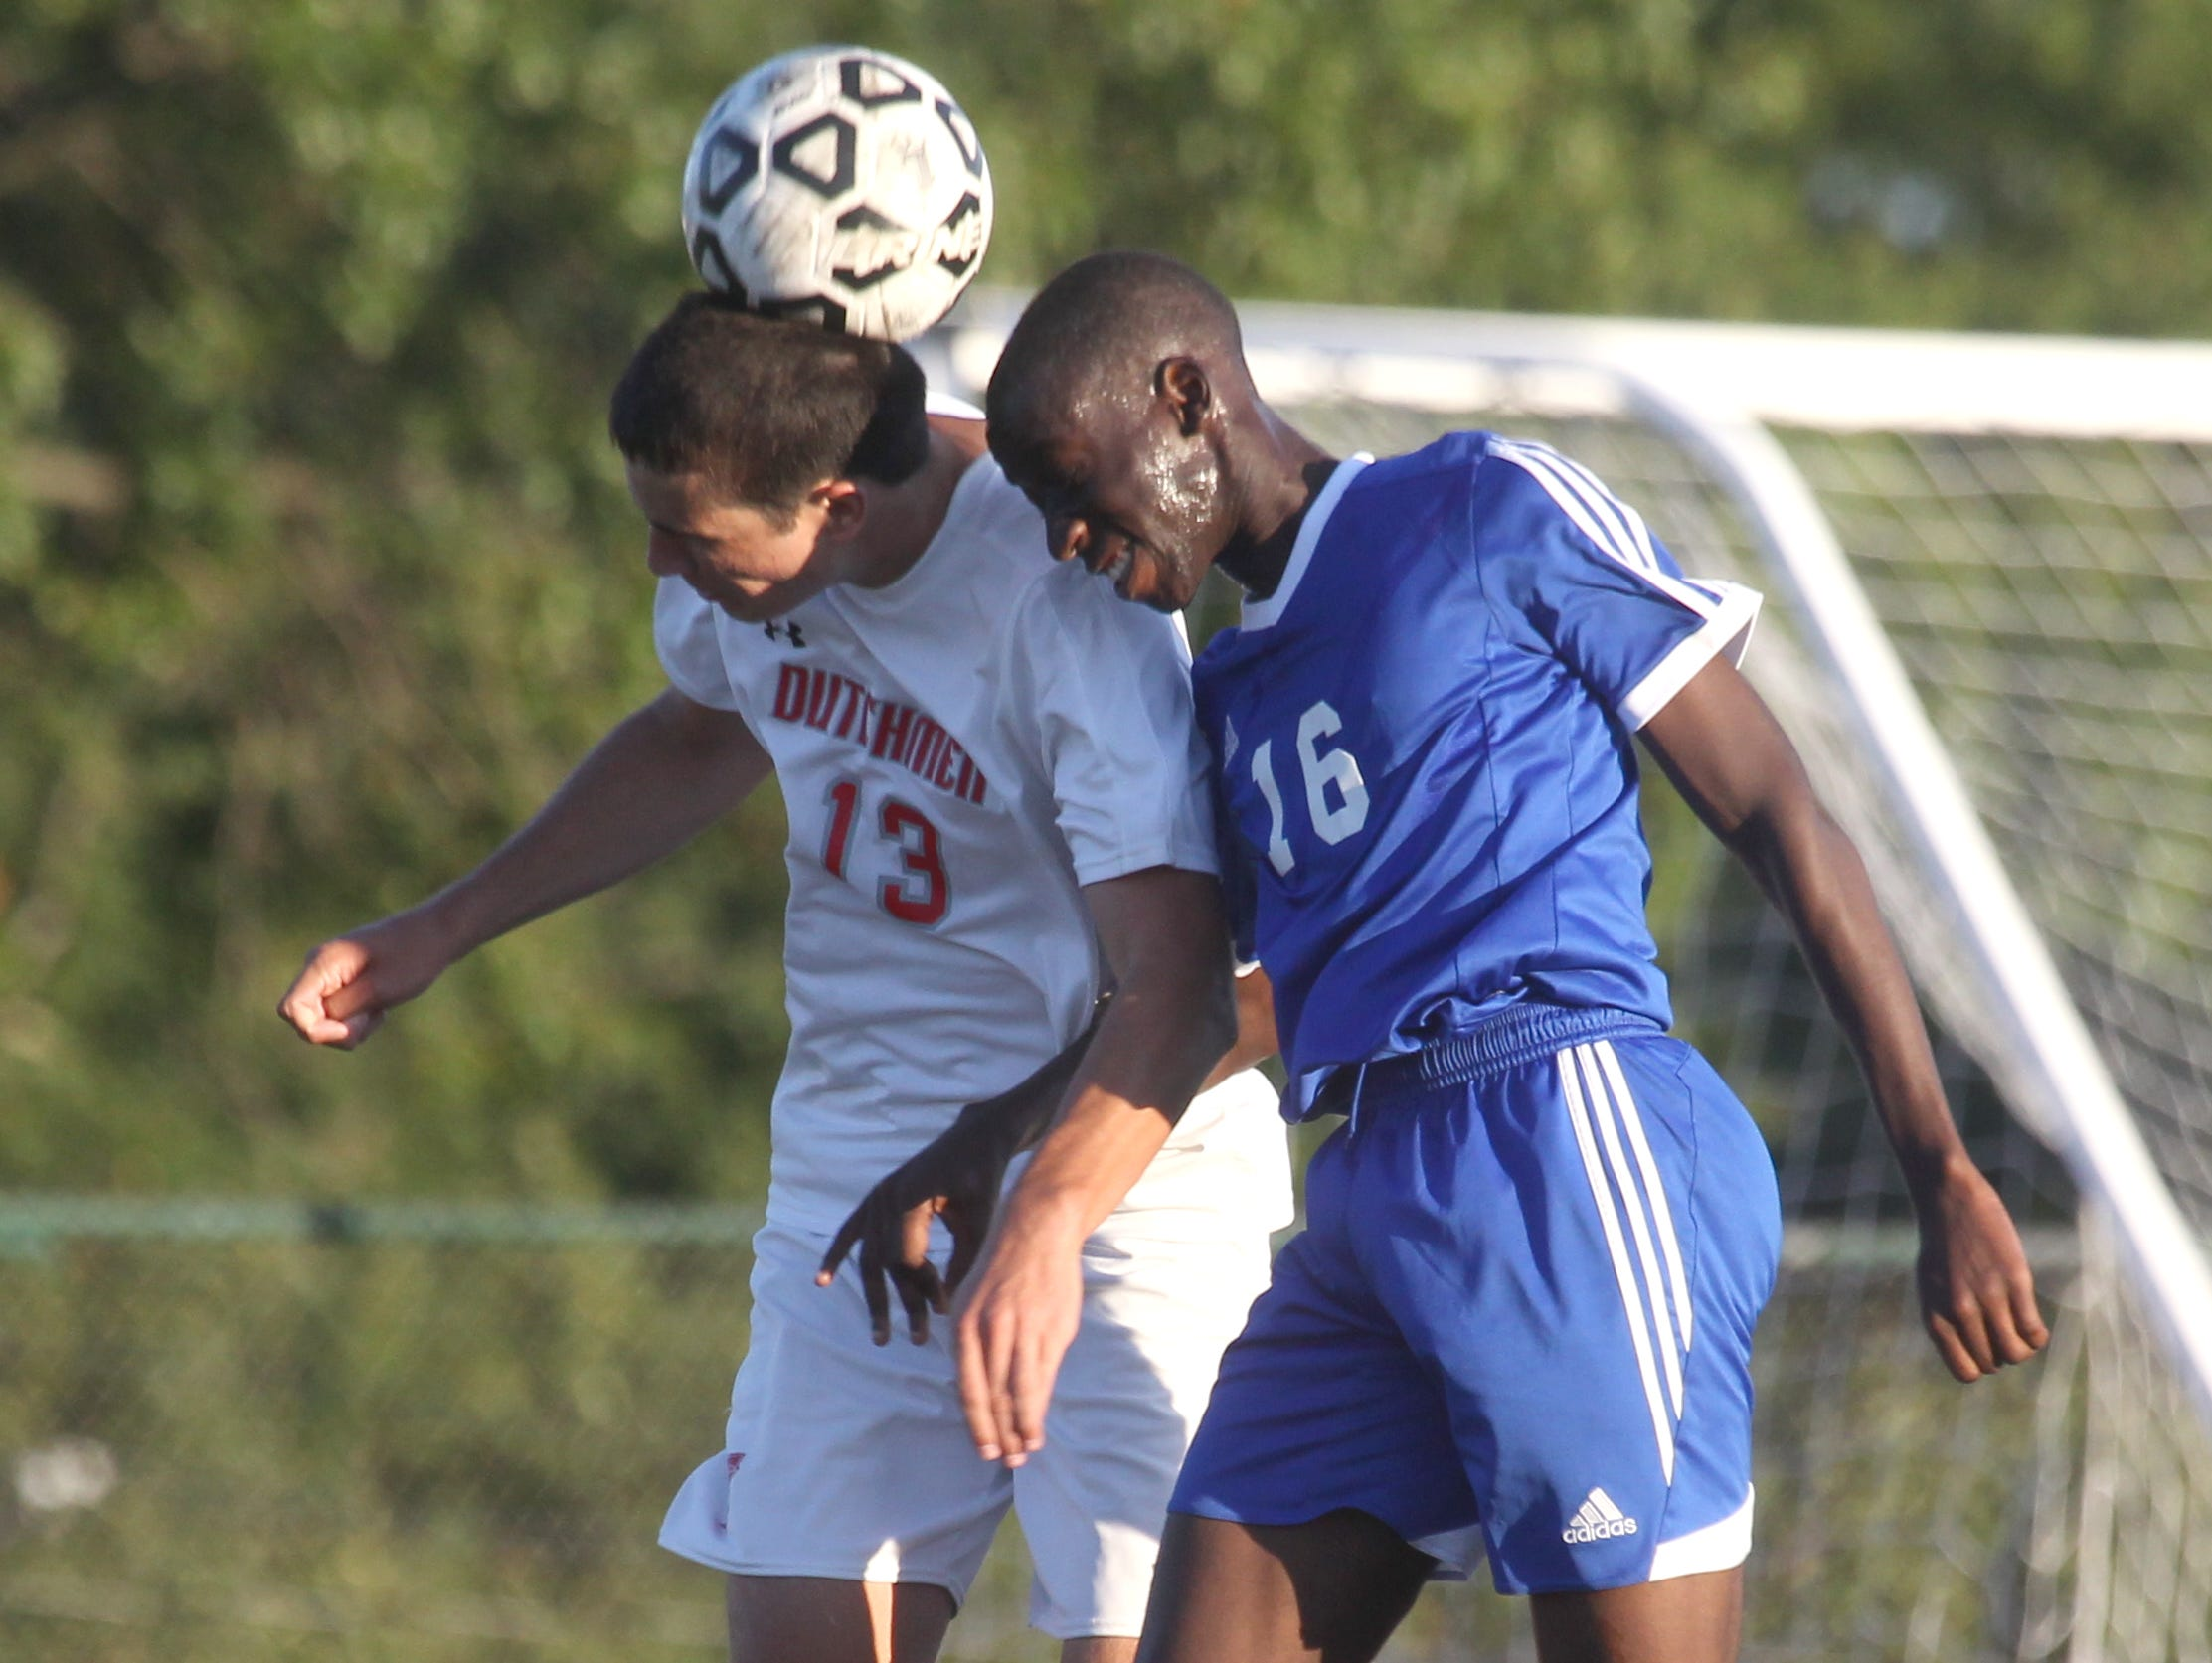 Tappan Zee's Chris Mulqueen, left, heads the ball next to Pearl River's Craig McDonald during a game at Tappan Zee Sept. 24, 2015. Pearl River won1-0.